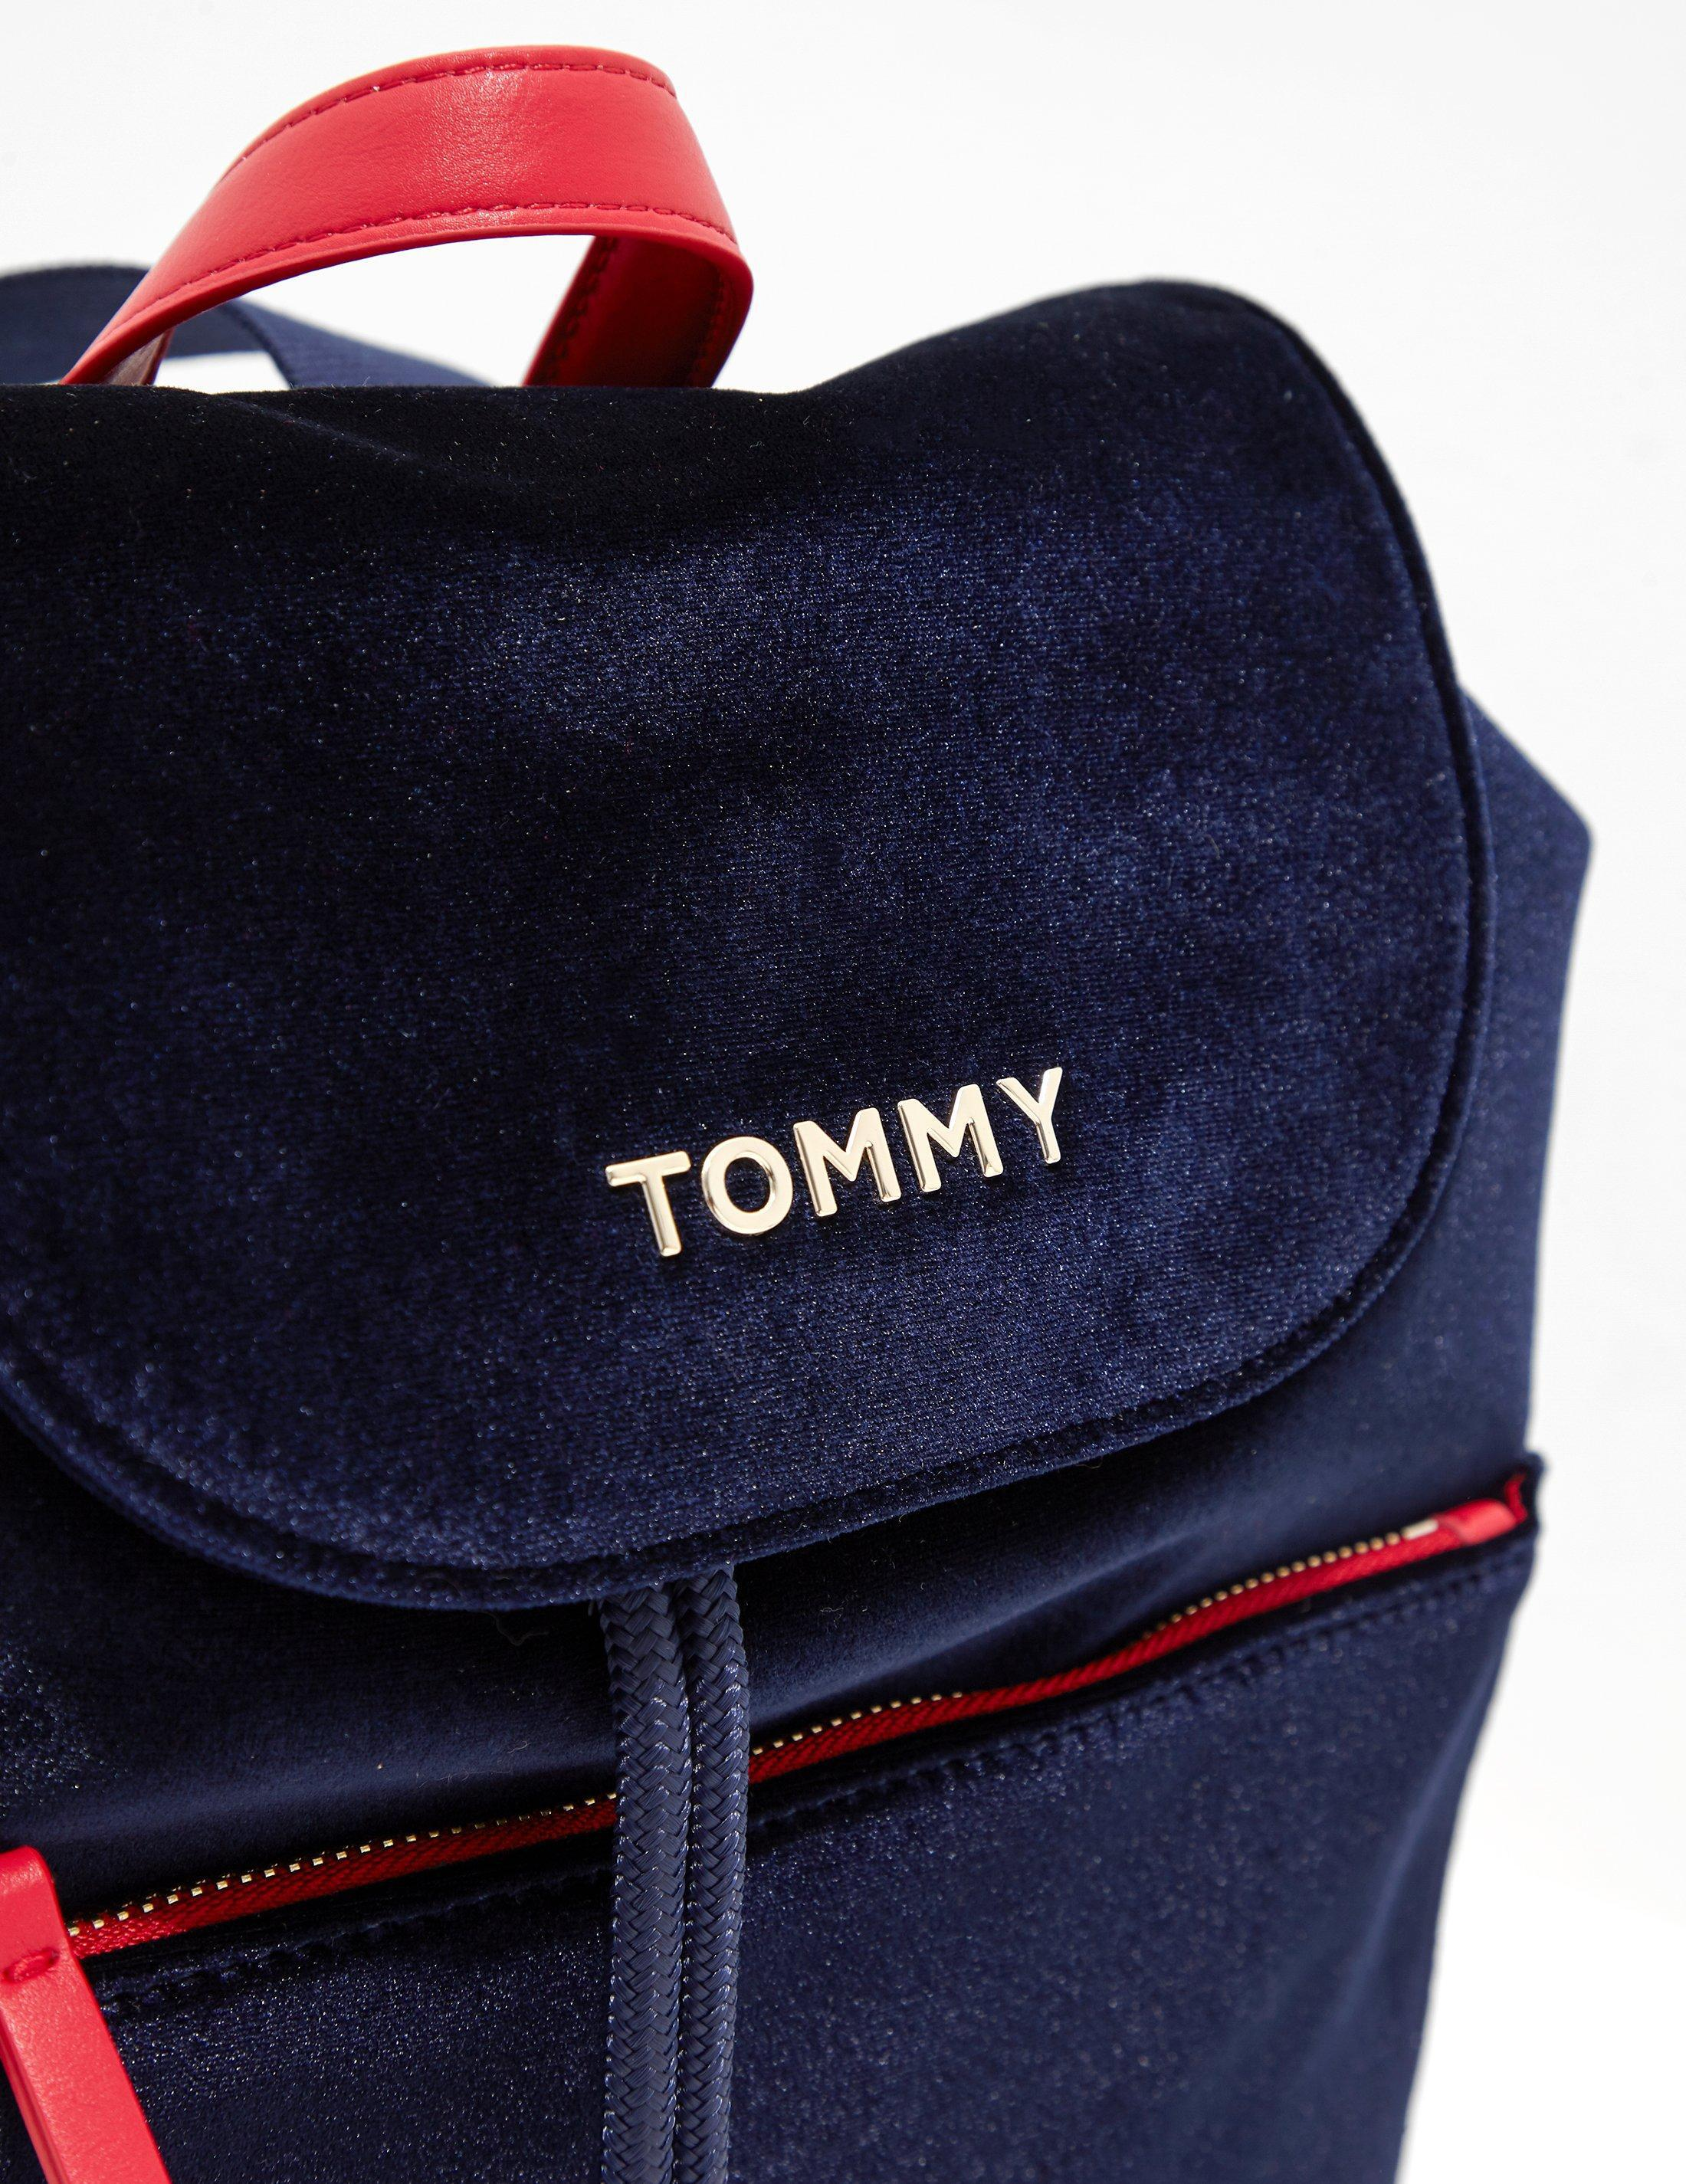 91aa03752ba Tommy Hilfiger Womens Cool Tommy Velvet Backpack Navy Blue in Blue ...